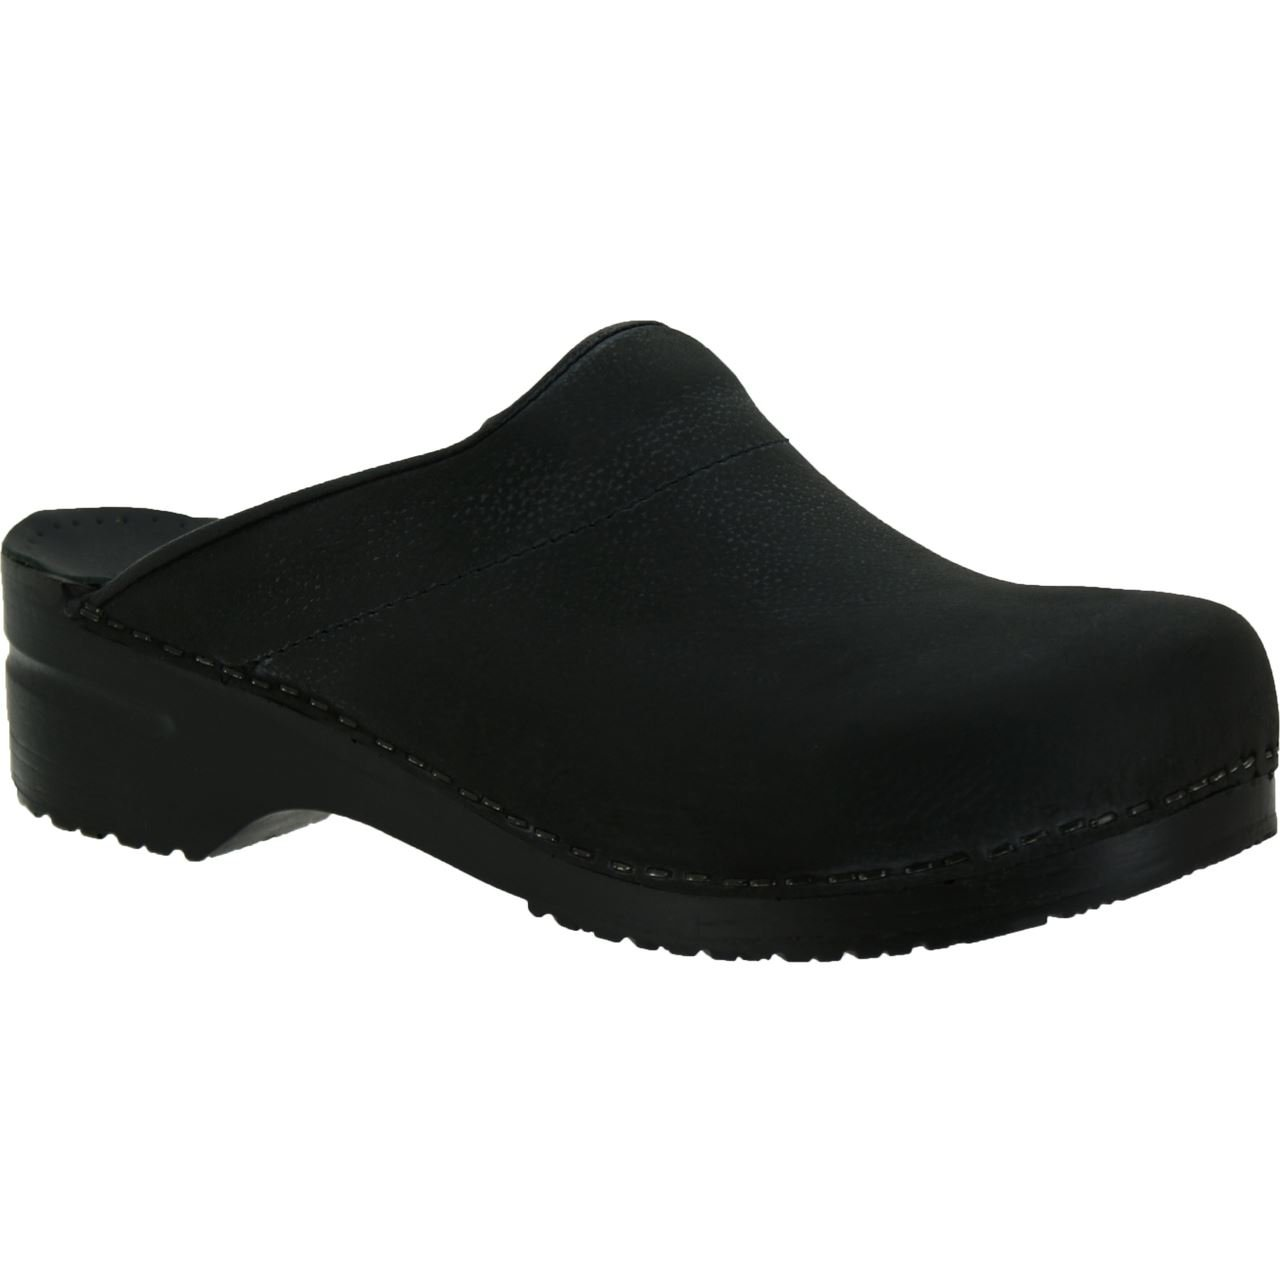 Men's Karl Textured Oil Clog